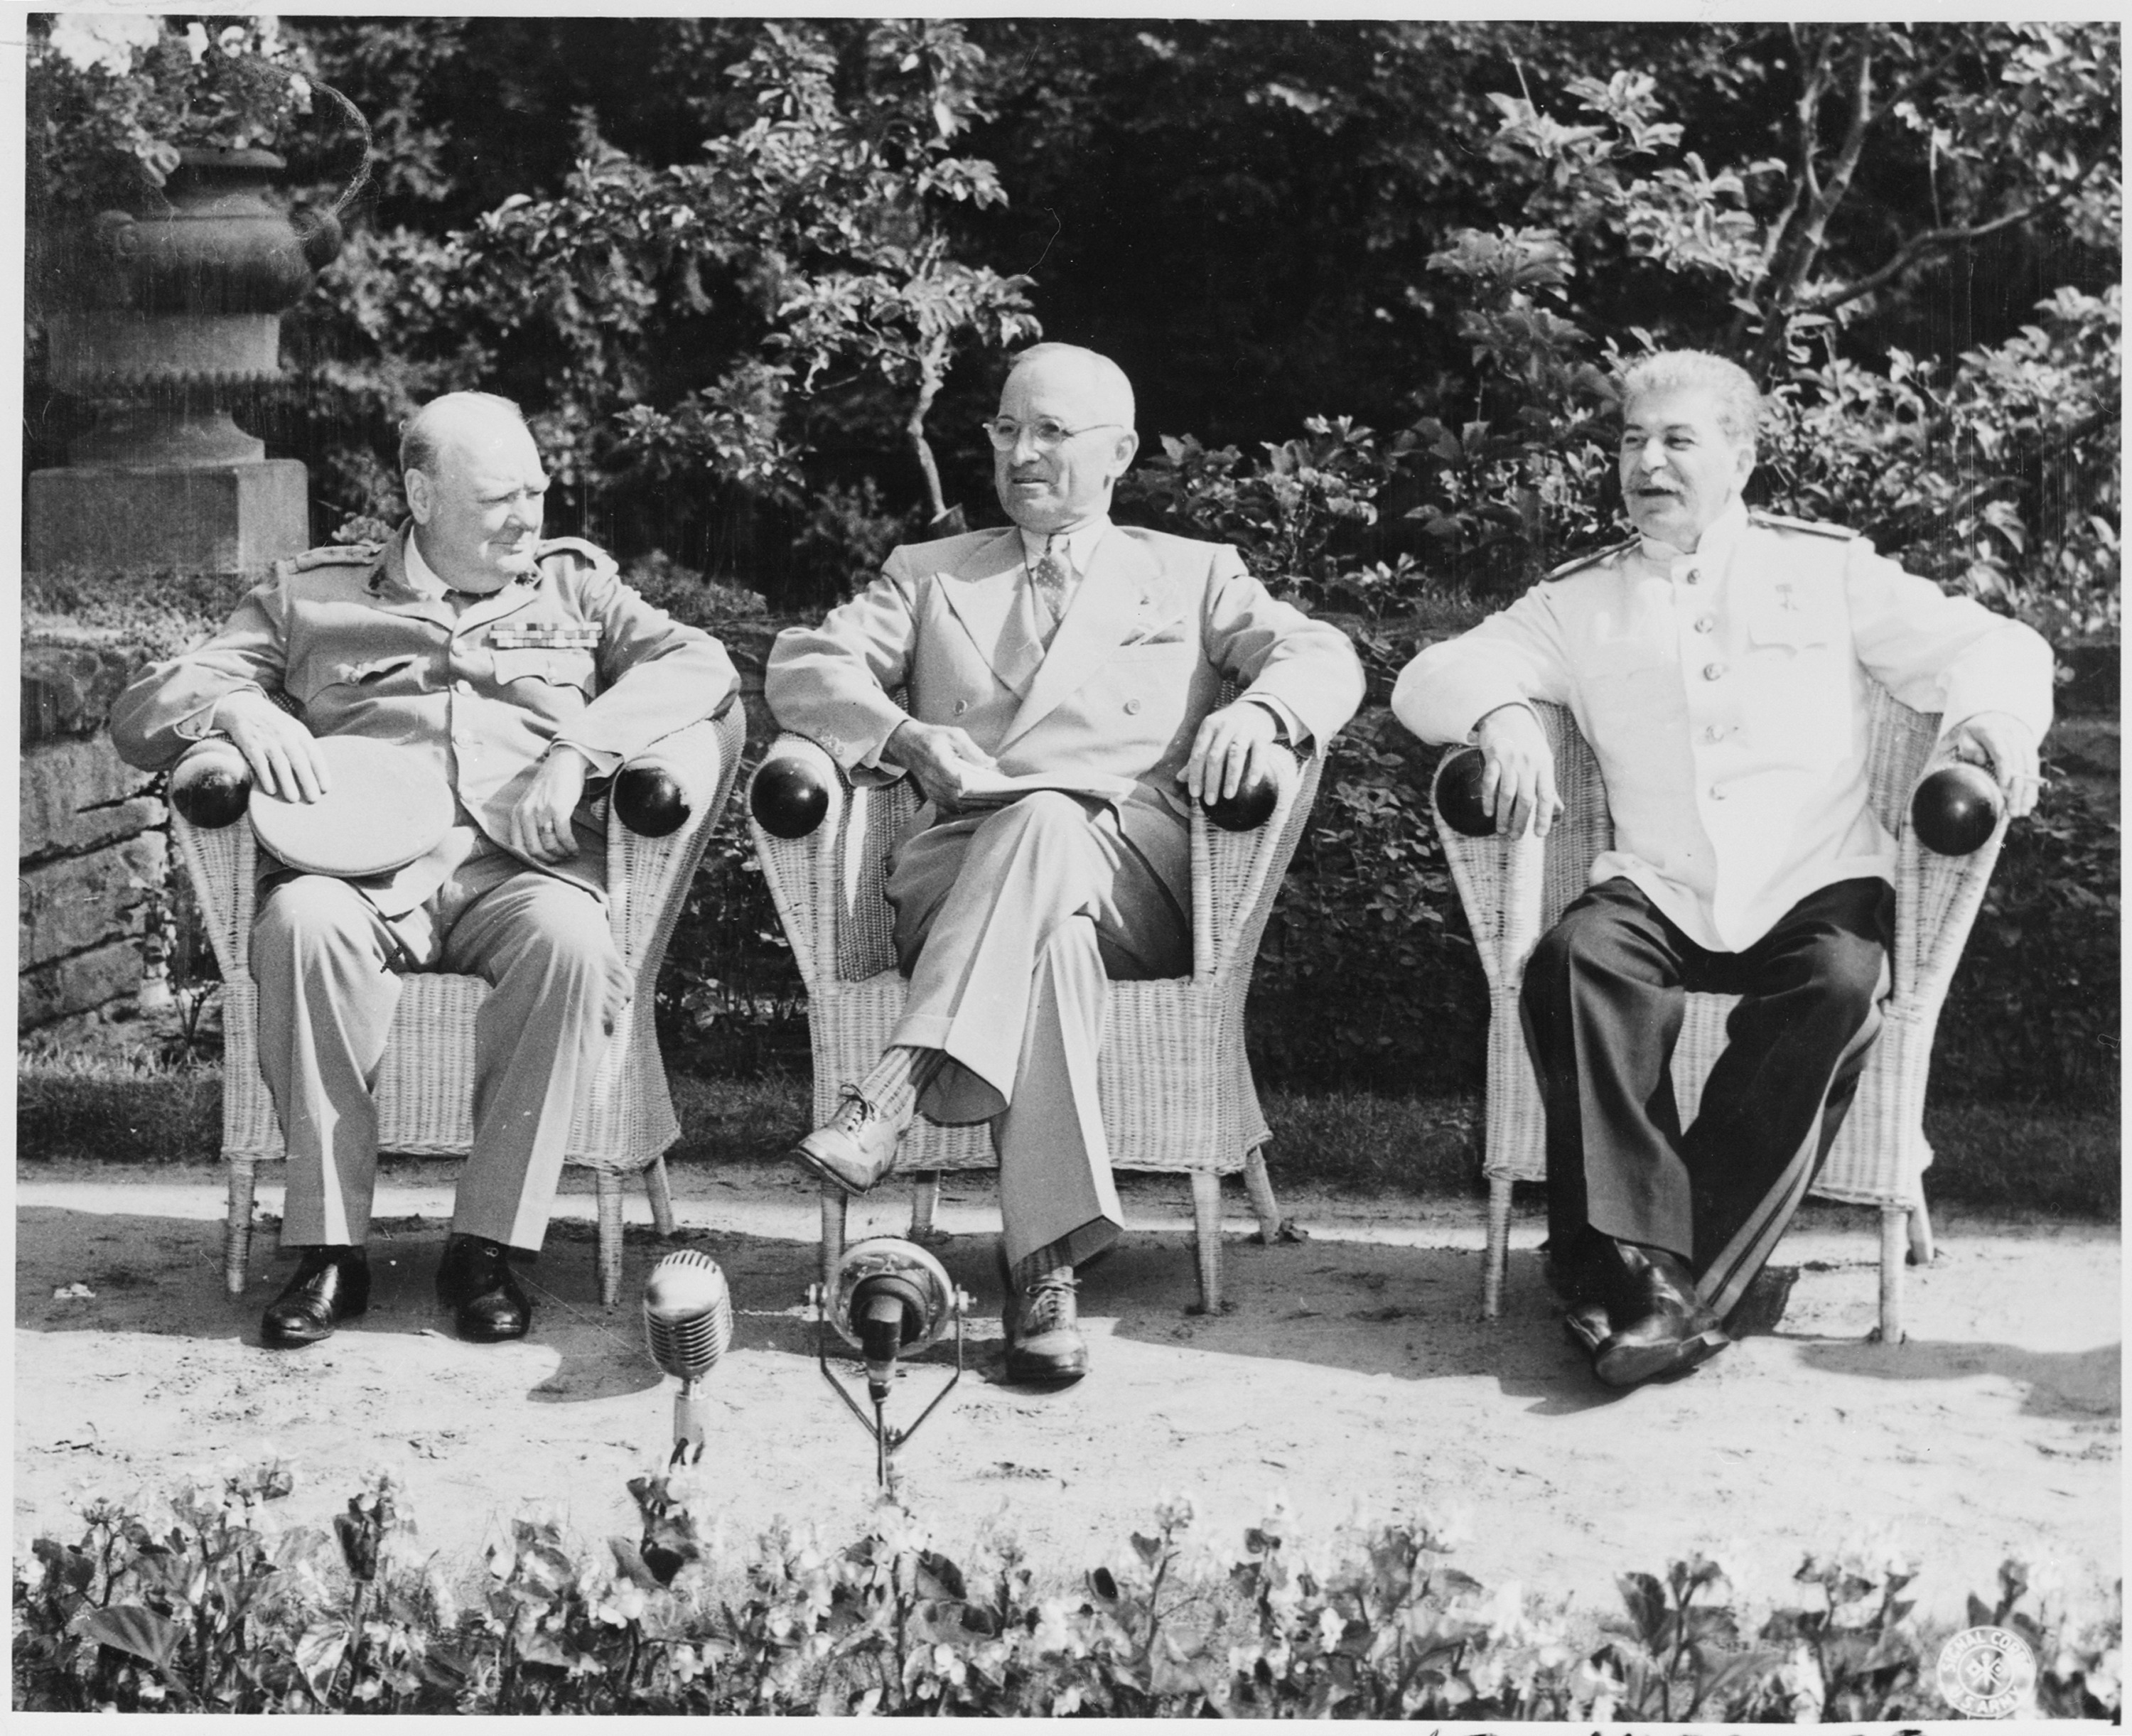 potsdam conference The potsdam conference was held in potsdam, germany (near berlin), from july 17 to august 2, 1945the participants were the victorious allies of world war ii, who had gathered to decide how.